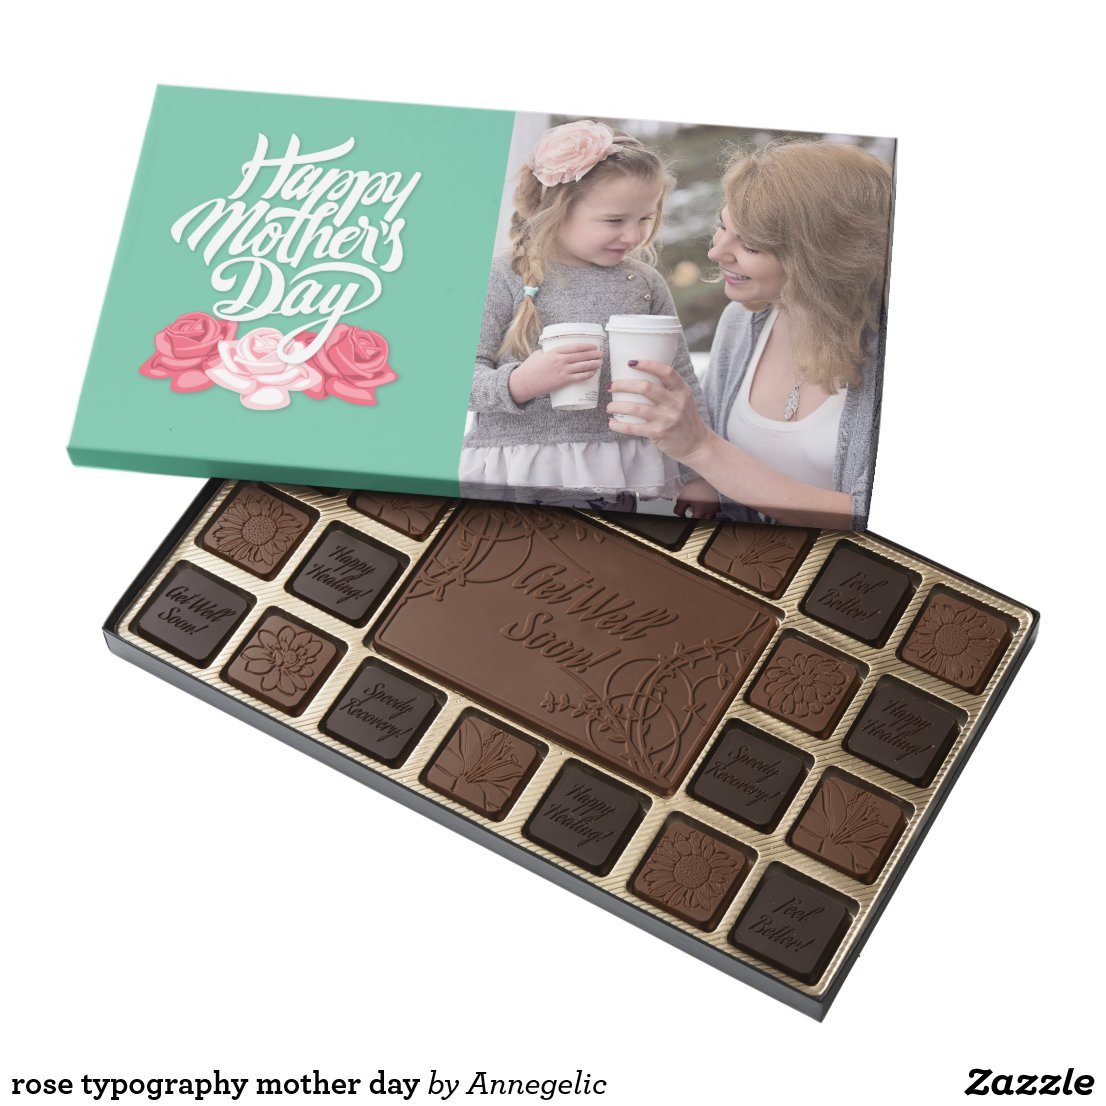 rose typography mother day assorted chocolates